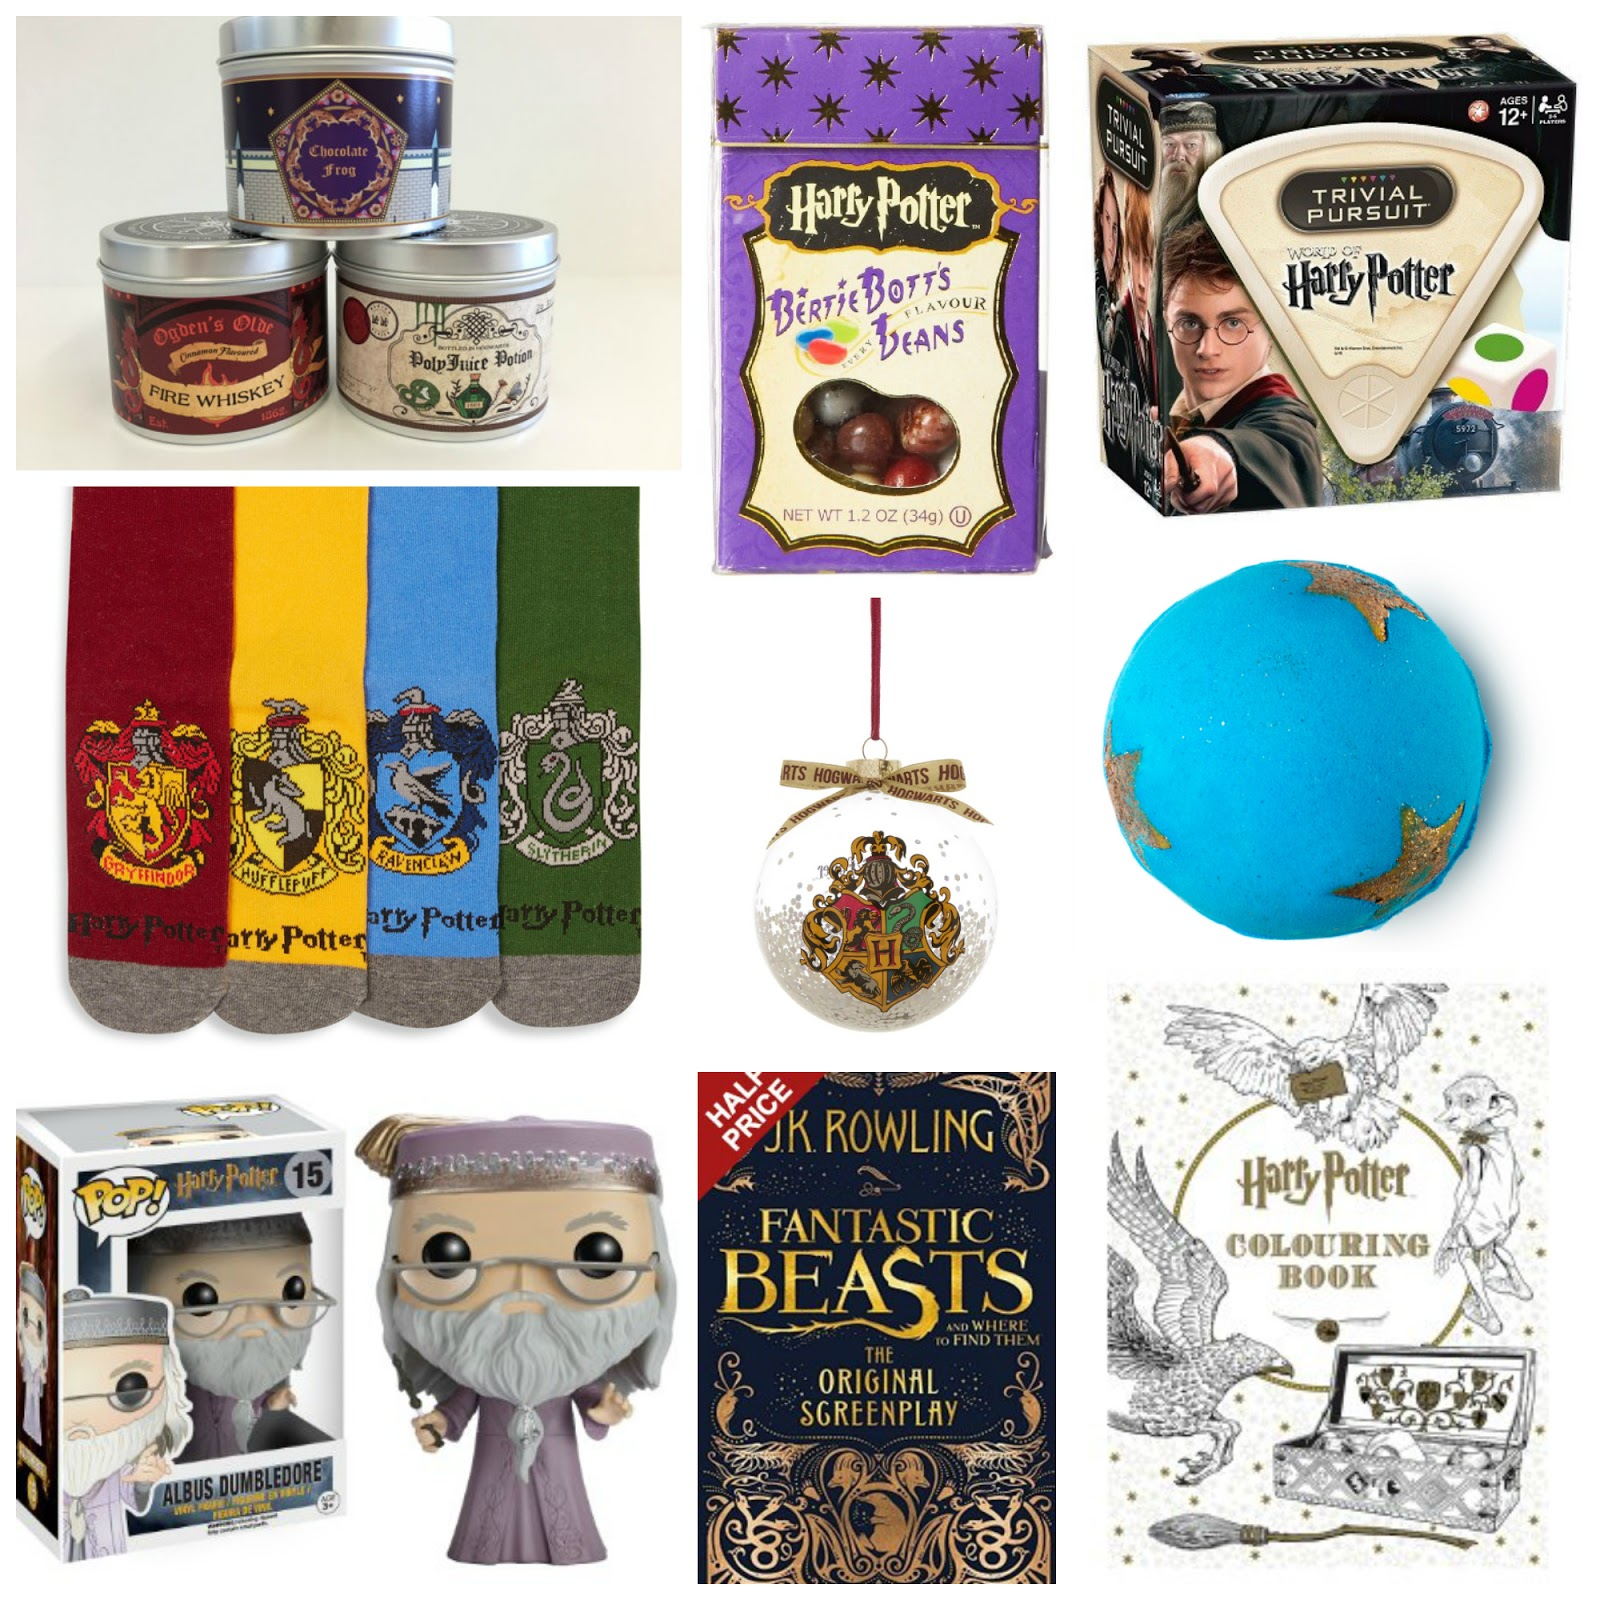 Harry Potter Christmas Gifts.Christmas Gift Guide Gifts For Harry Potter Fans What